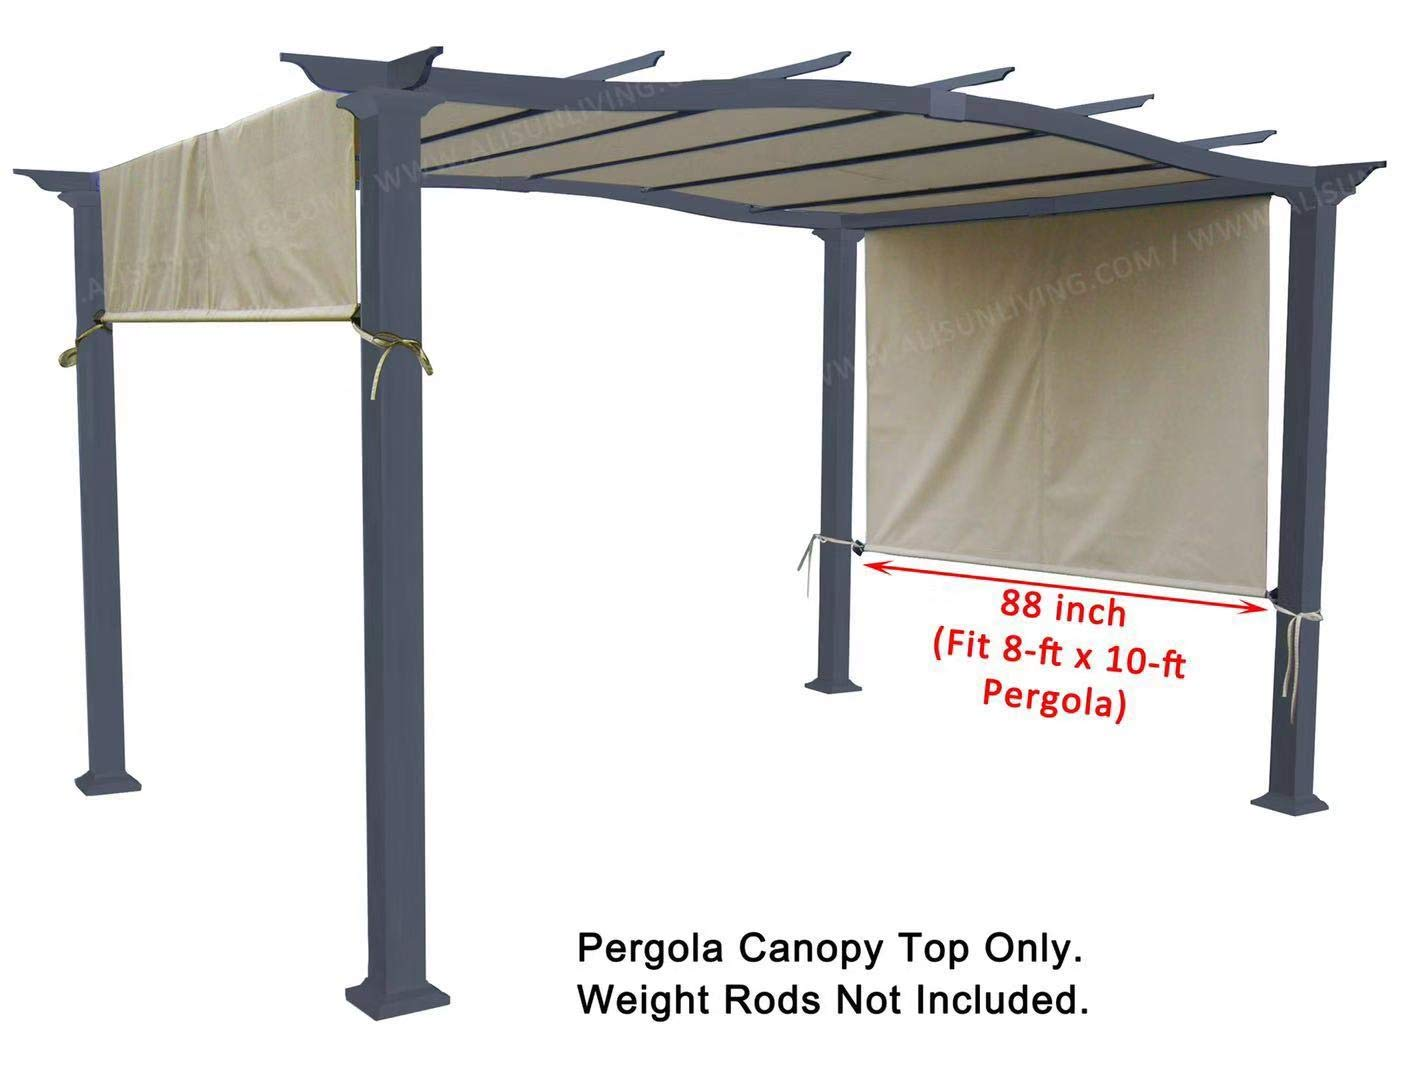 ALISUN Universal Replacement Canopy Top for 8' x 10' Pergola Structure - Beige (Size: 194'' x 88'')